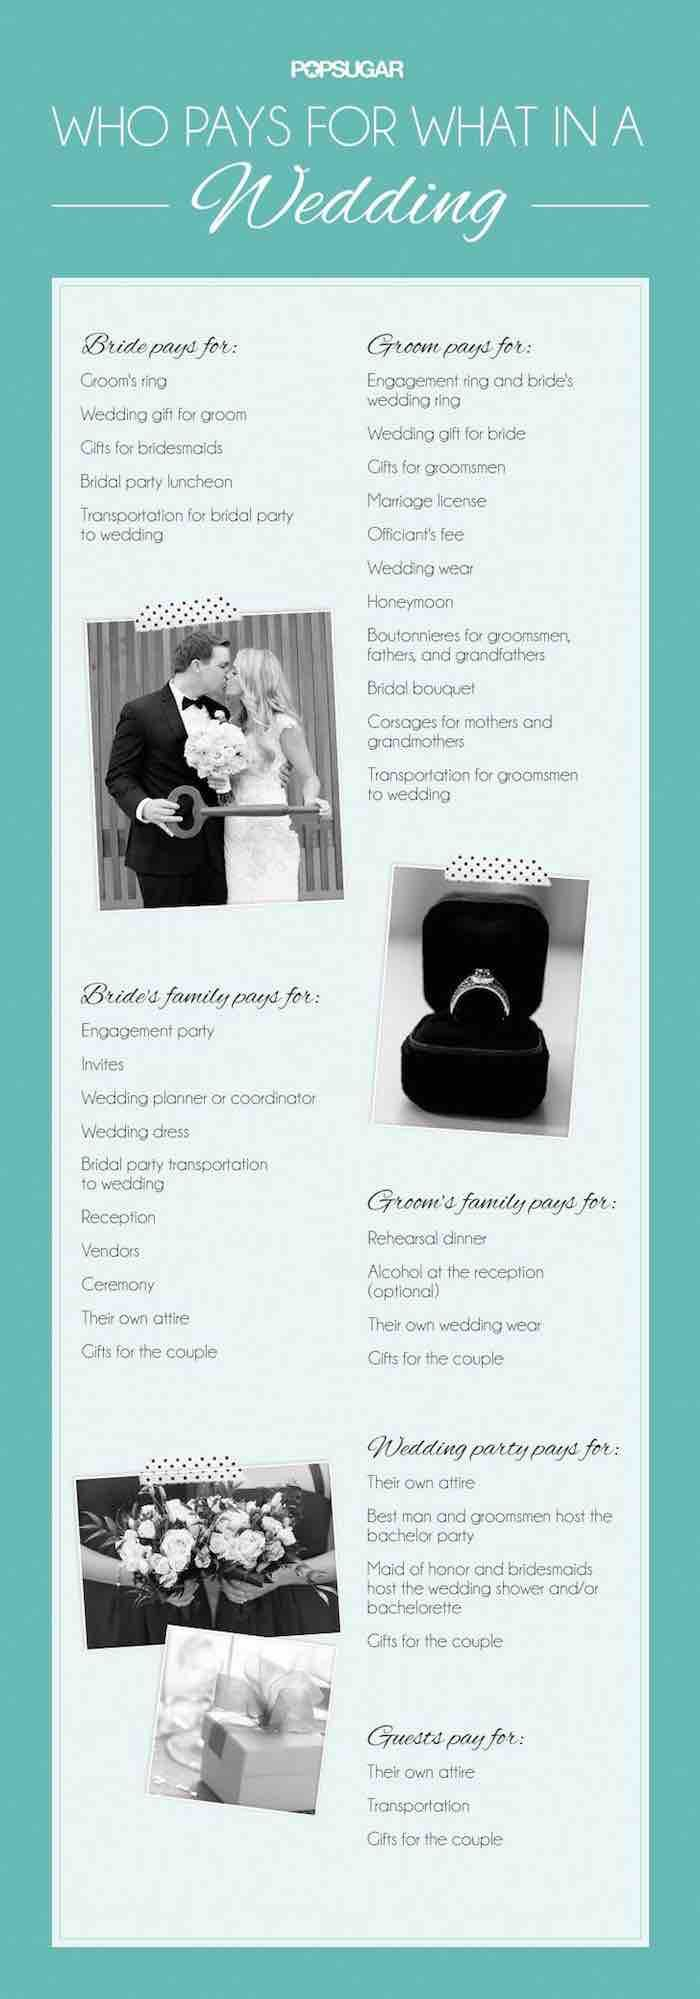 Who pays for what in a wedding; - via Pop Sugar